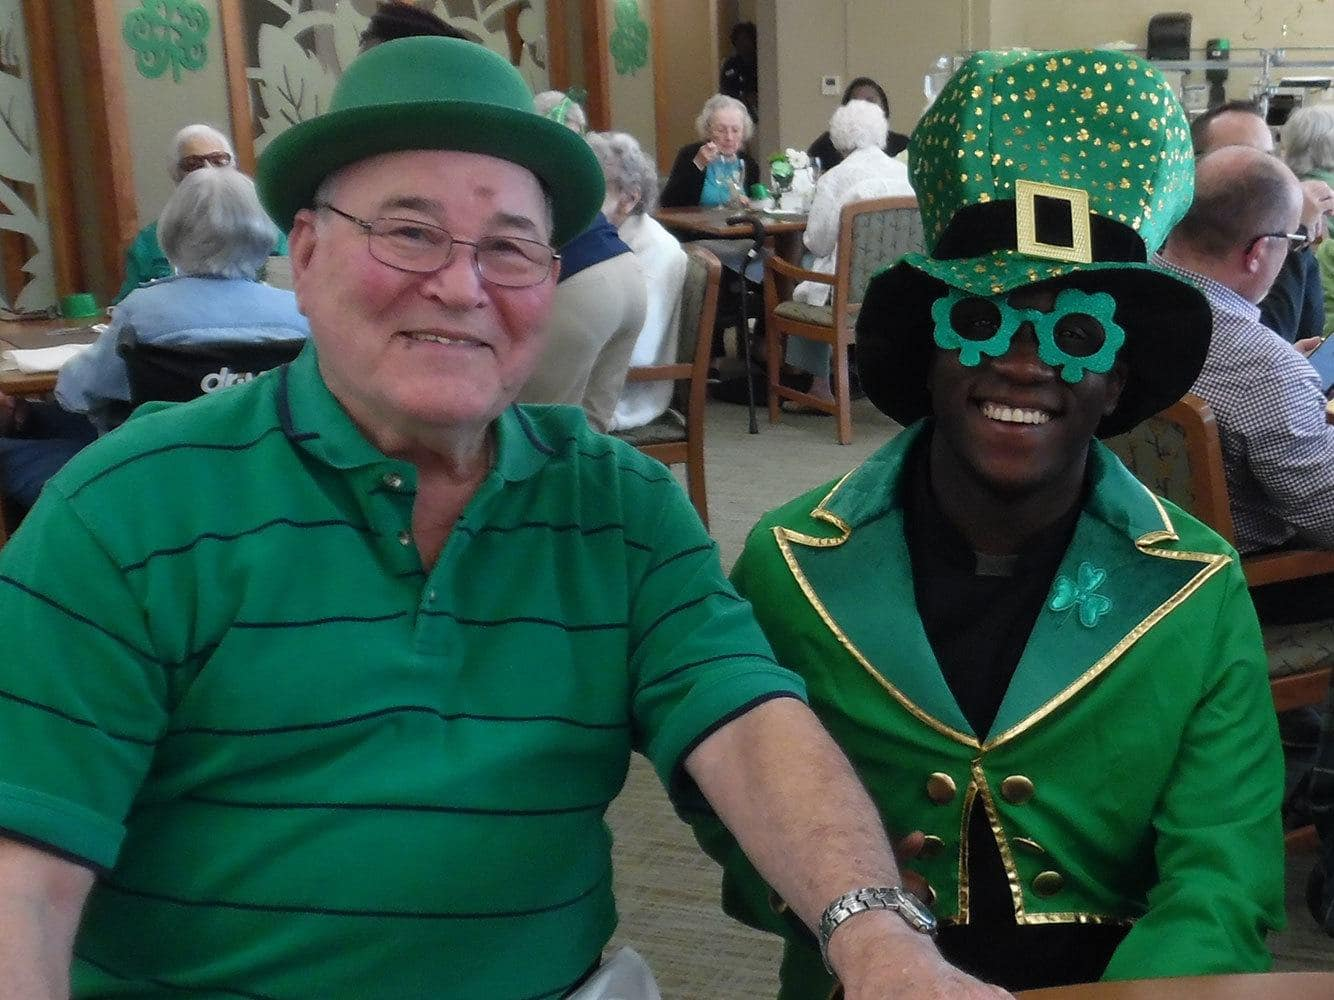 St. Patrick's day at Merrill Gardens at Woodstock